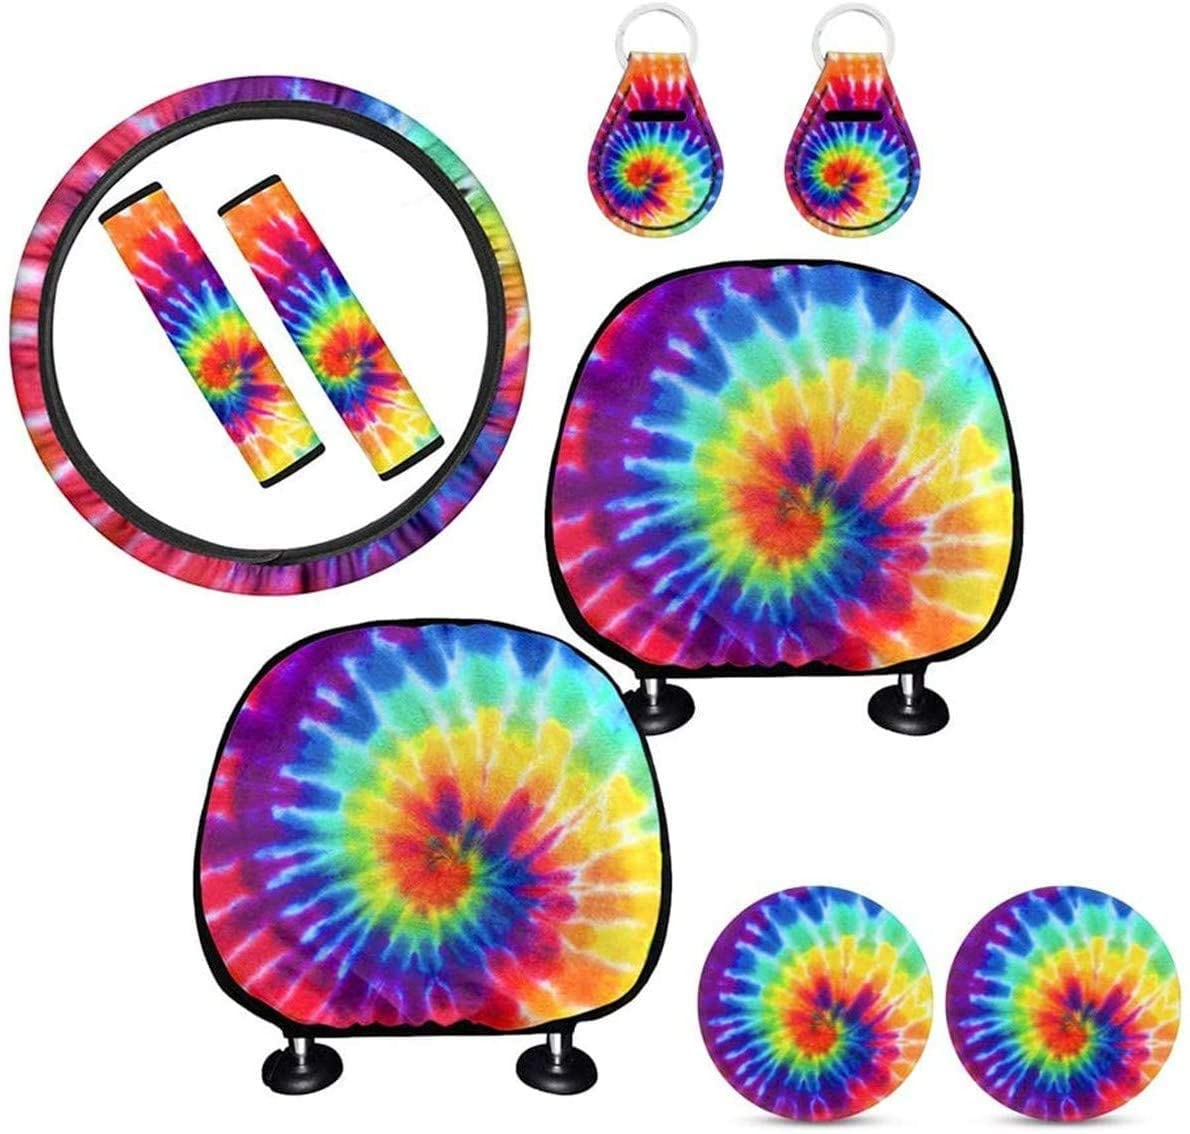 BIGCARJOB Bright Color Tie Dye Car Accessories Set, Streering Wheel Cover+Safety Belt Cover+Cup Coaster+Headrest Cover+Keyring,9pcs Set for Women and Man